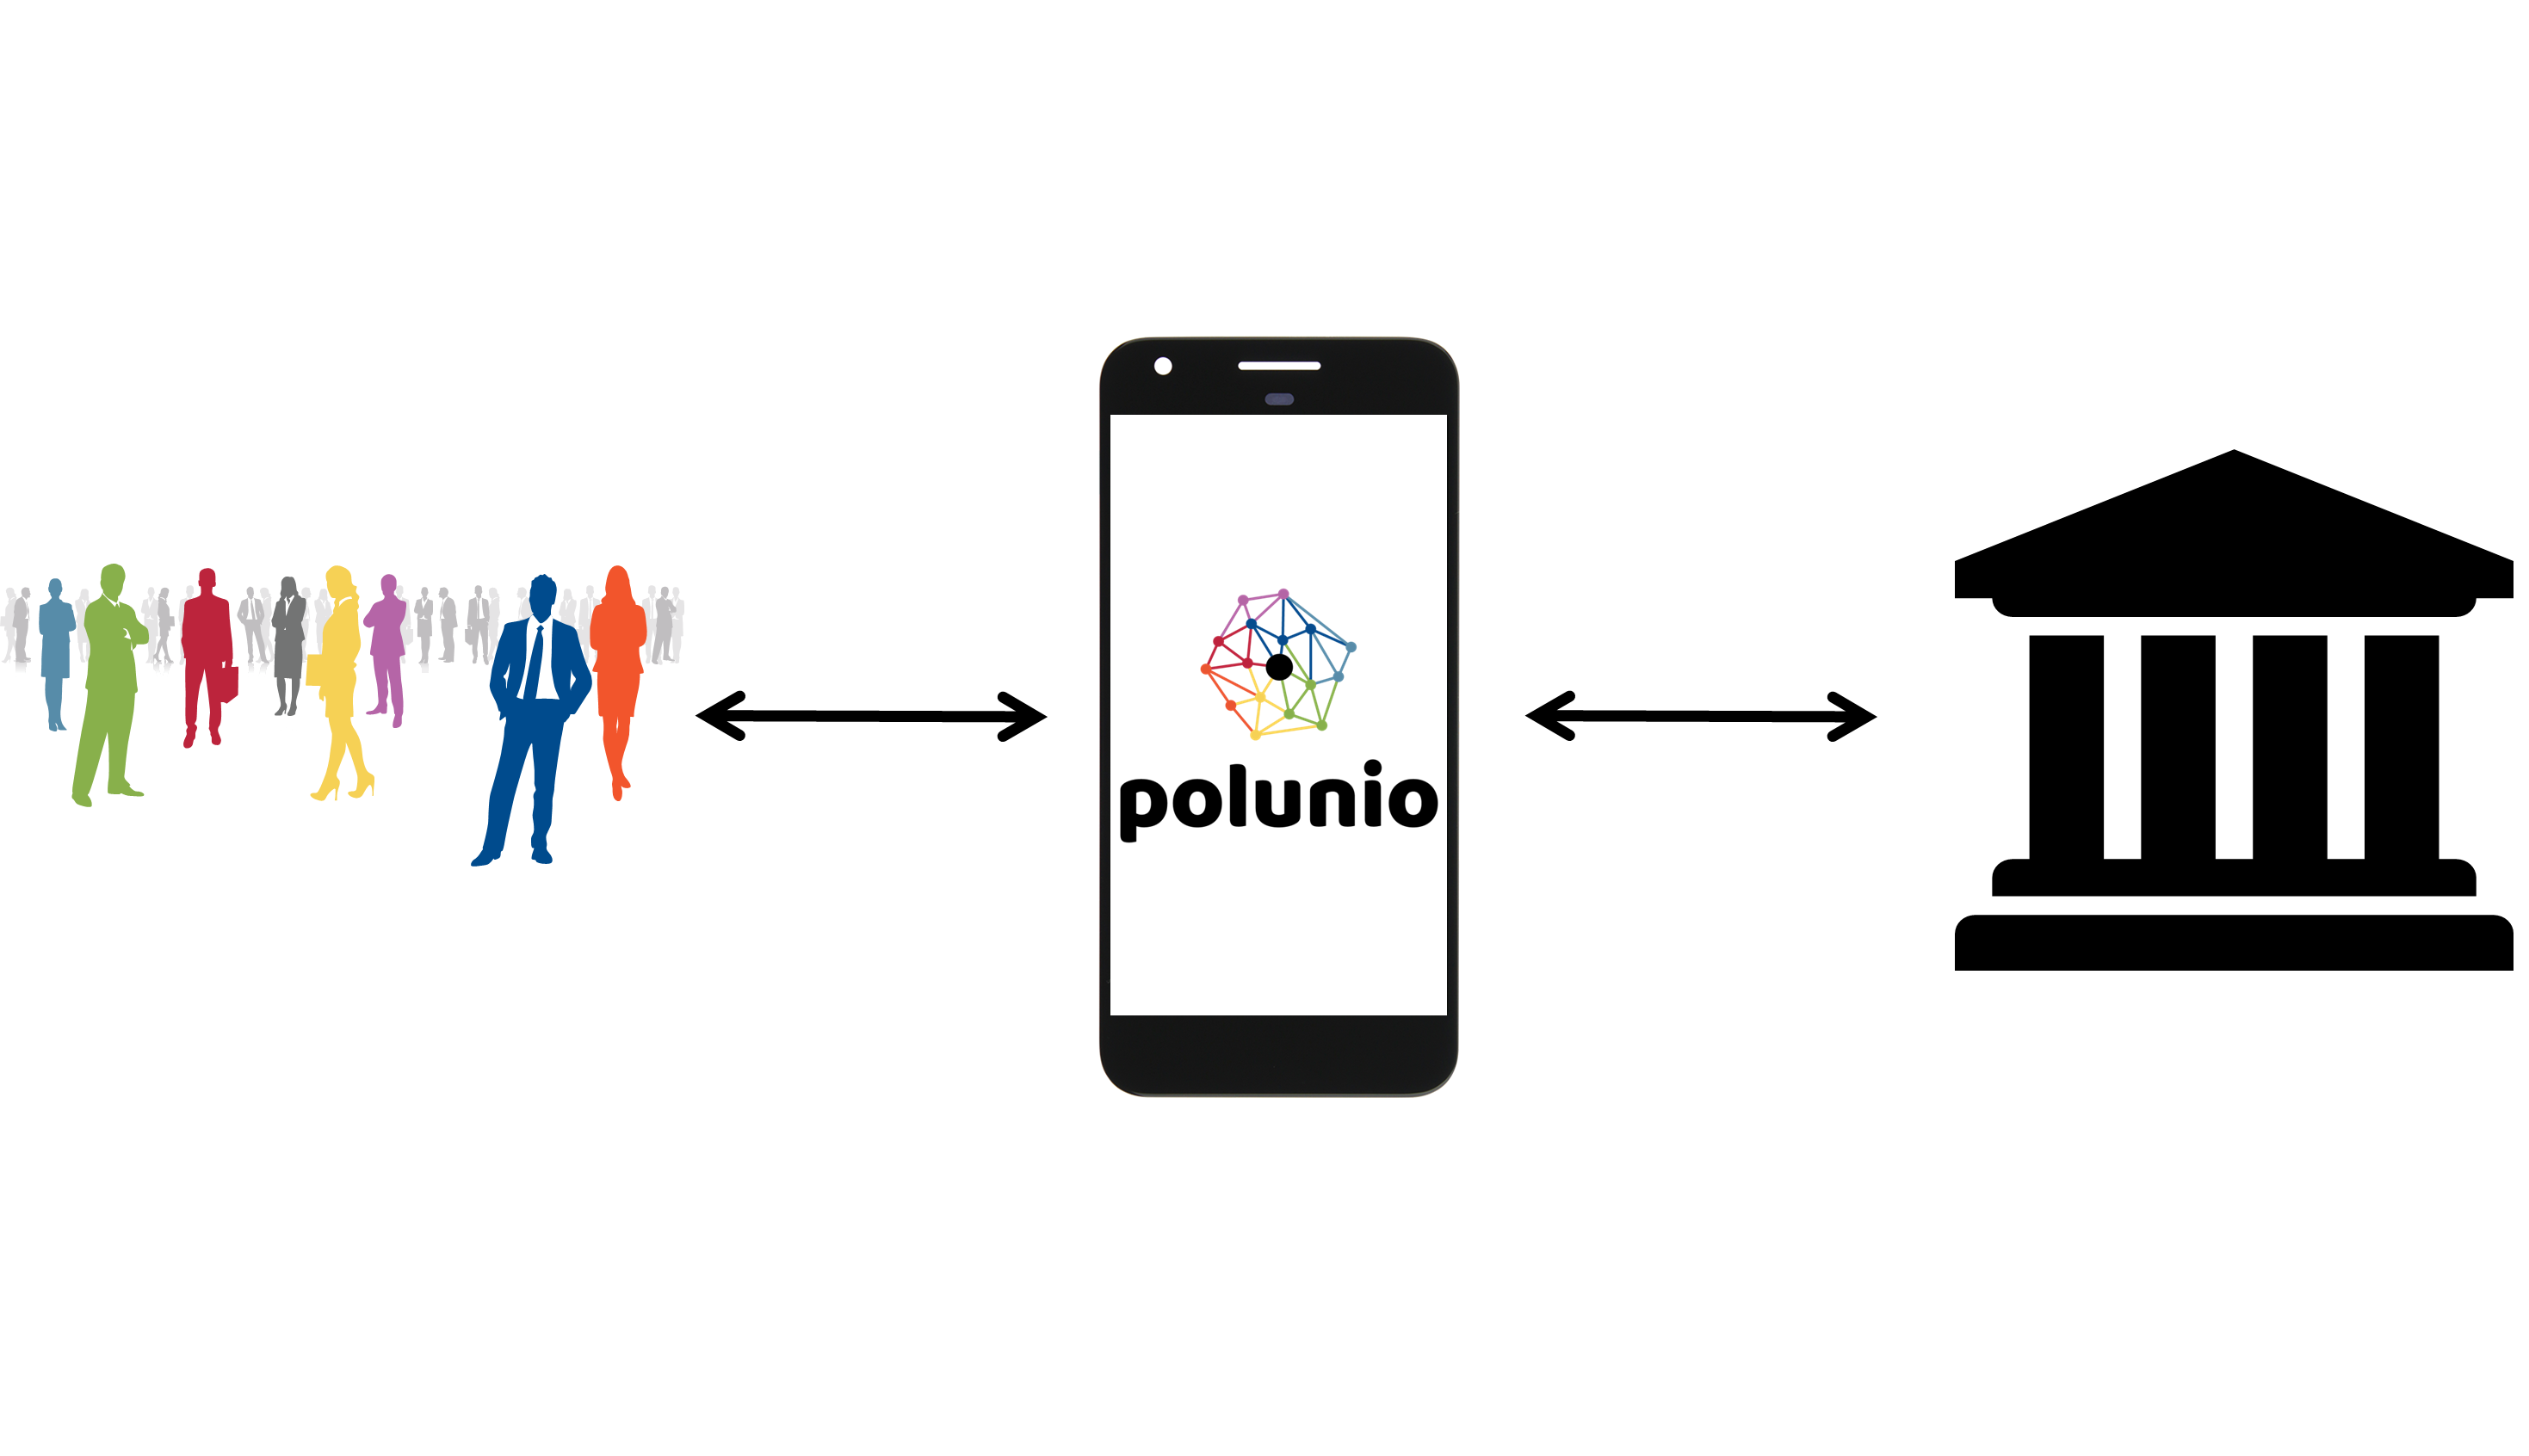 process of polunio